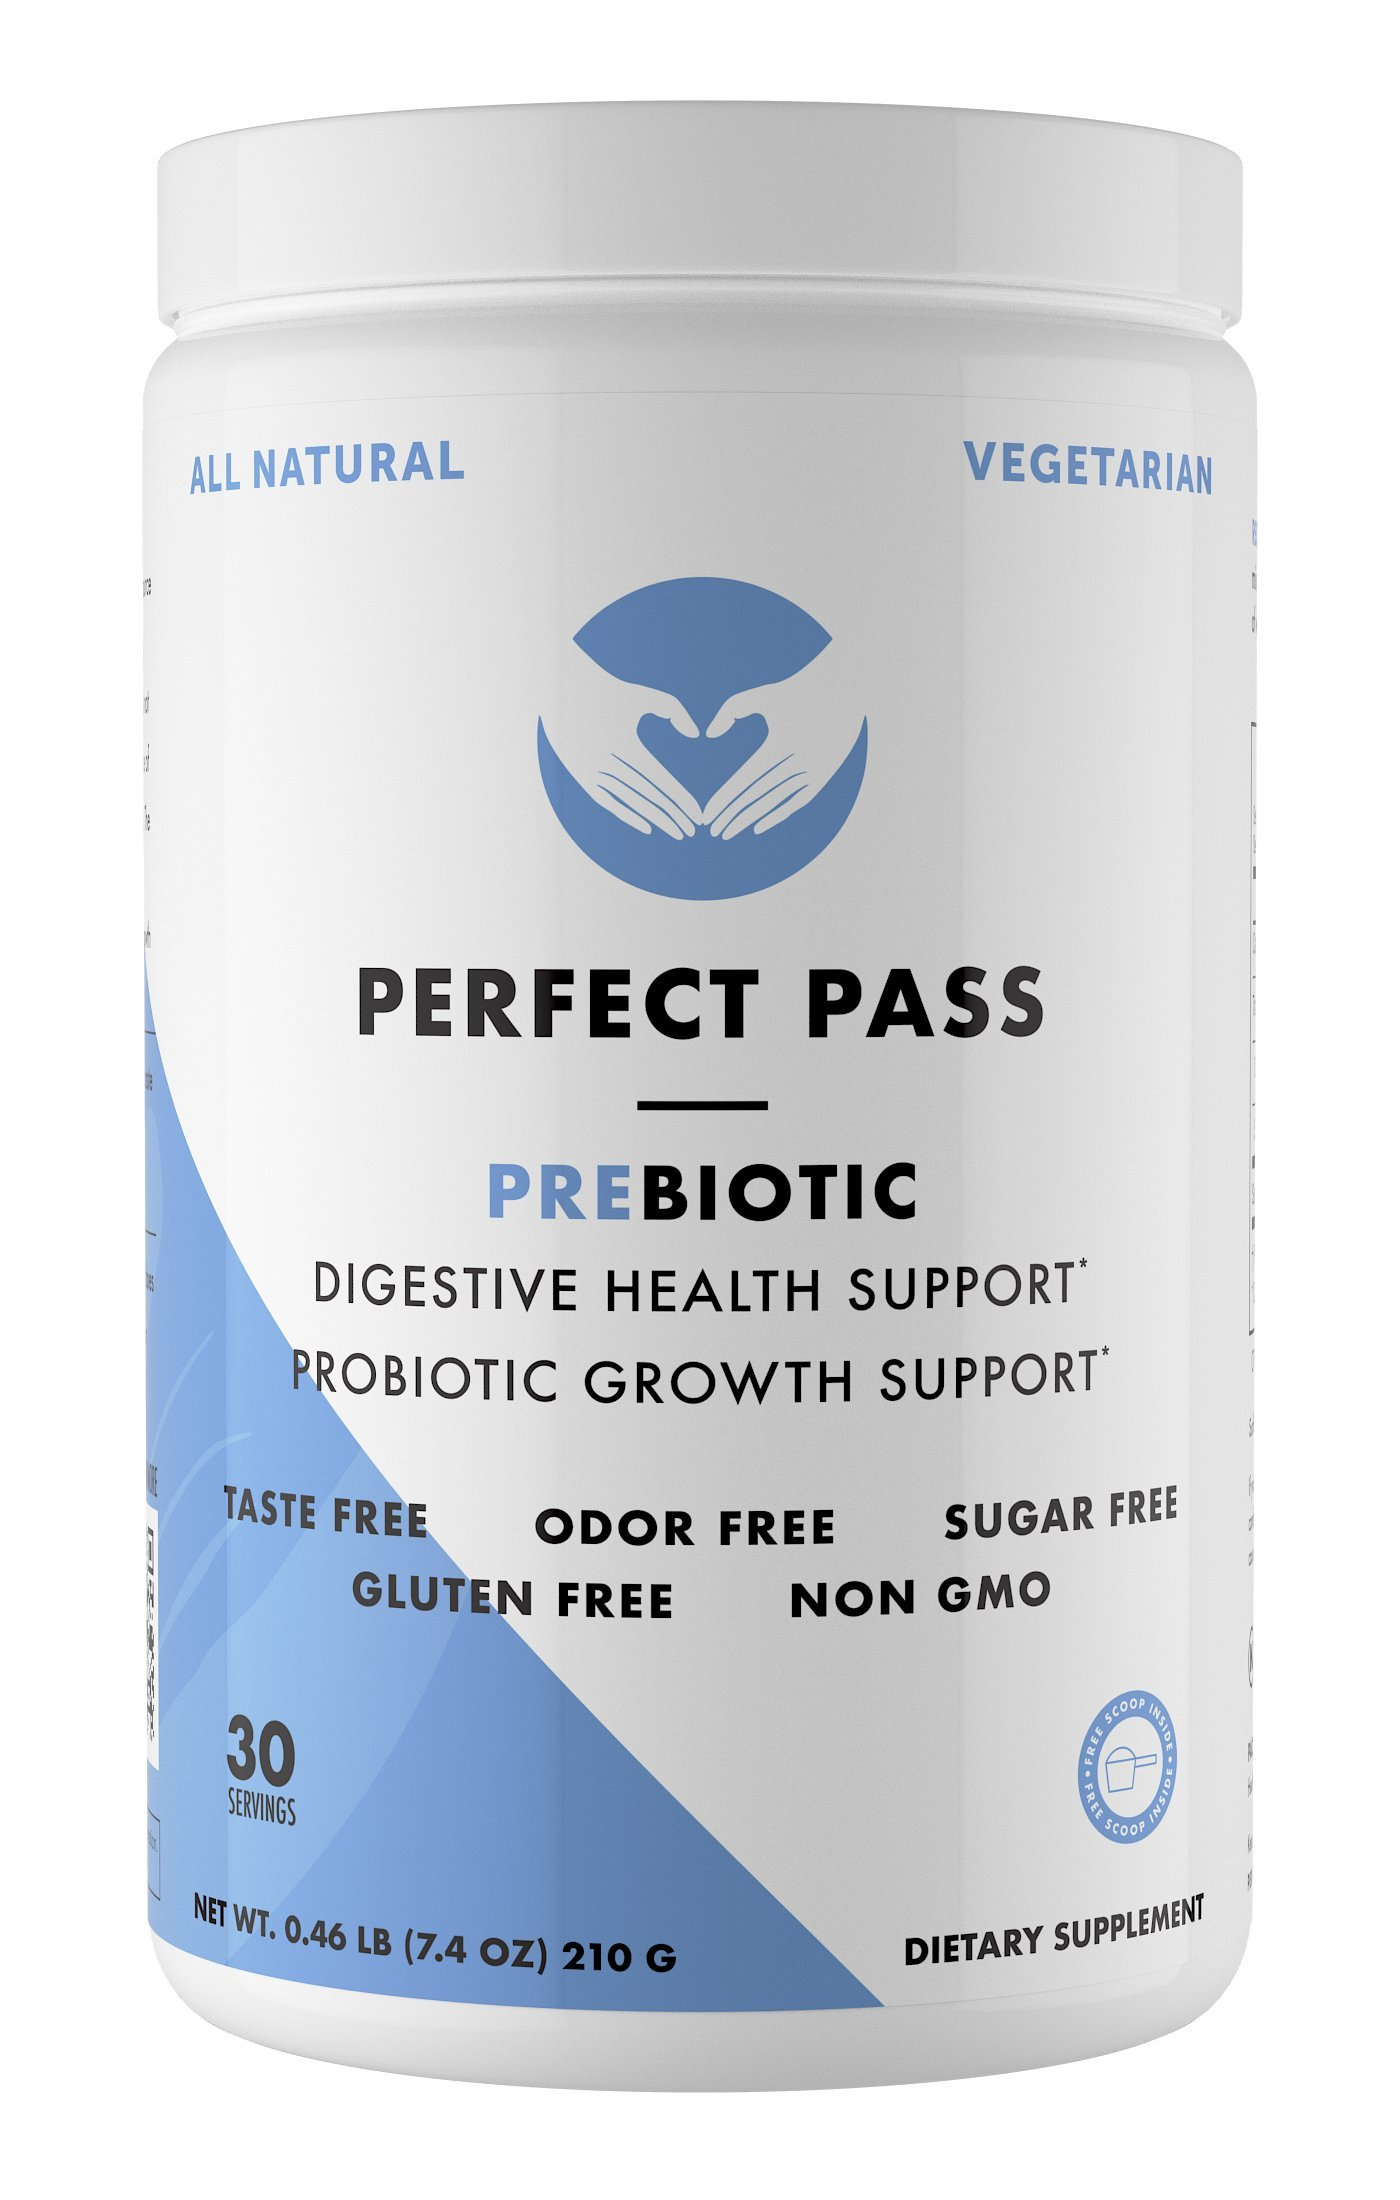 Perfect Pass Prebiotic PHGG Partially Hydrolyzed Guar Gum 210g Powder - 100% Natural Gluten Free Non GMO - Certified Kosher Vegetarian Sugar Free by PERFECT PASS (Image #1)